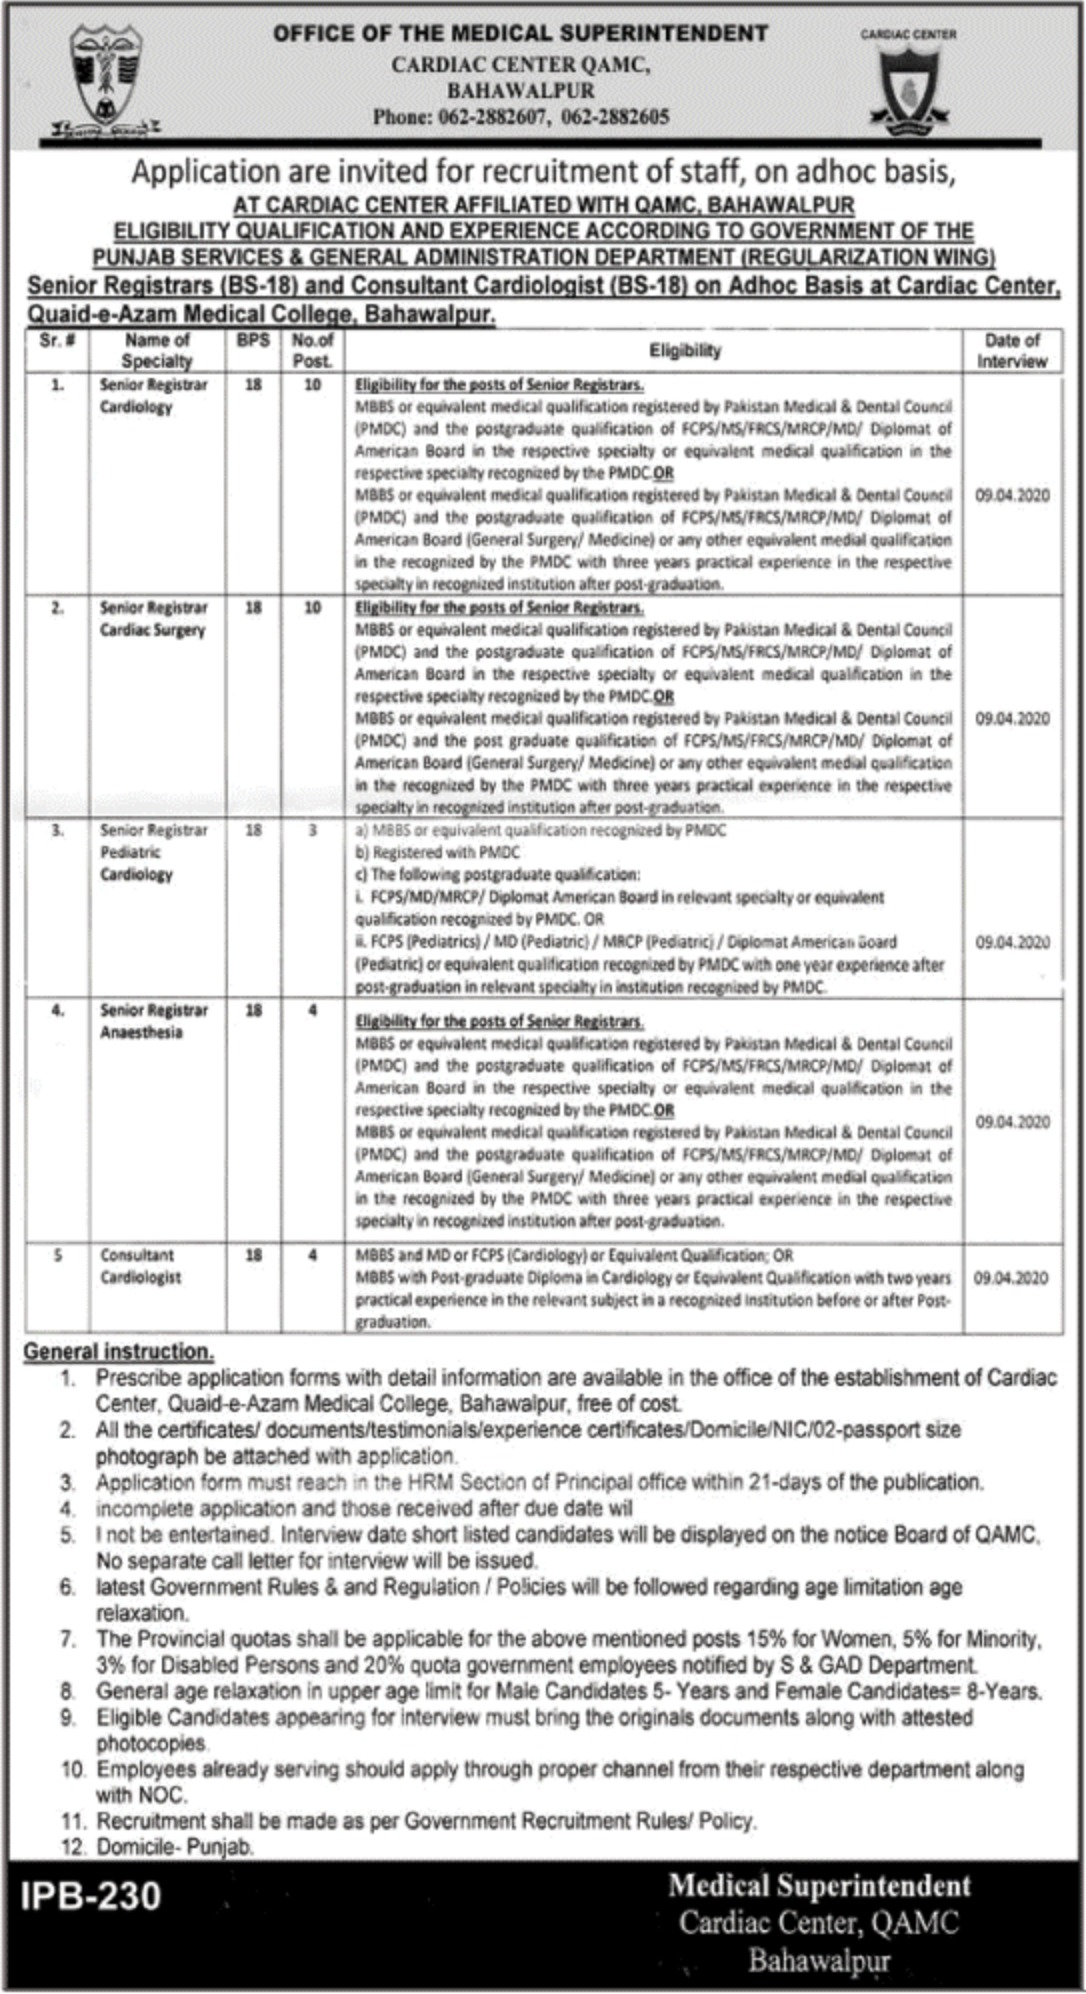 Cardiac Center QAMC Bahawalpur Jobs 2020